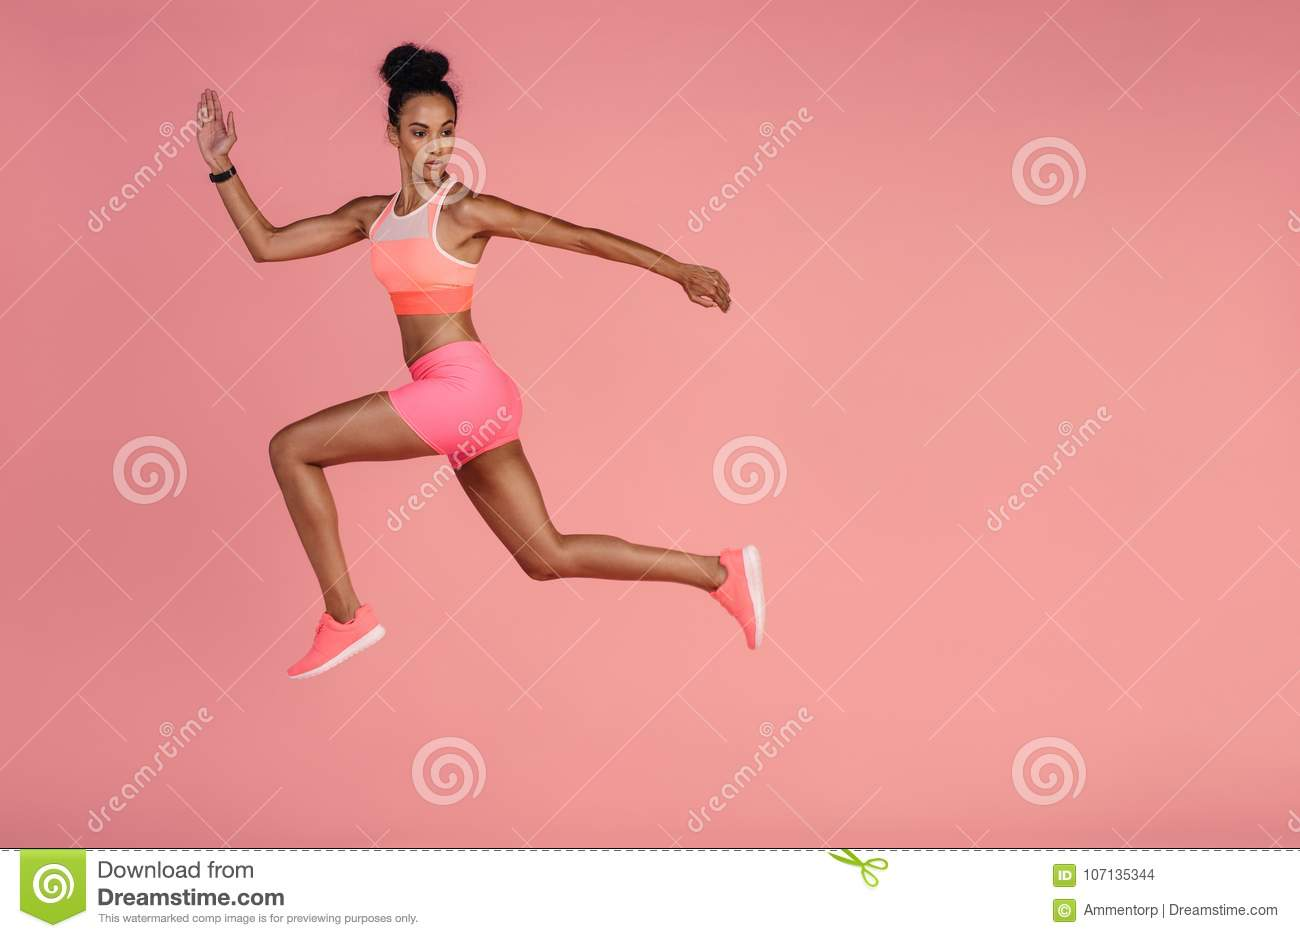 Download Healthy African Woman Sprinting On Pink Background Stock Photo - Image of jumping, lunge: 107135344